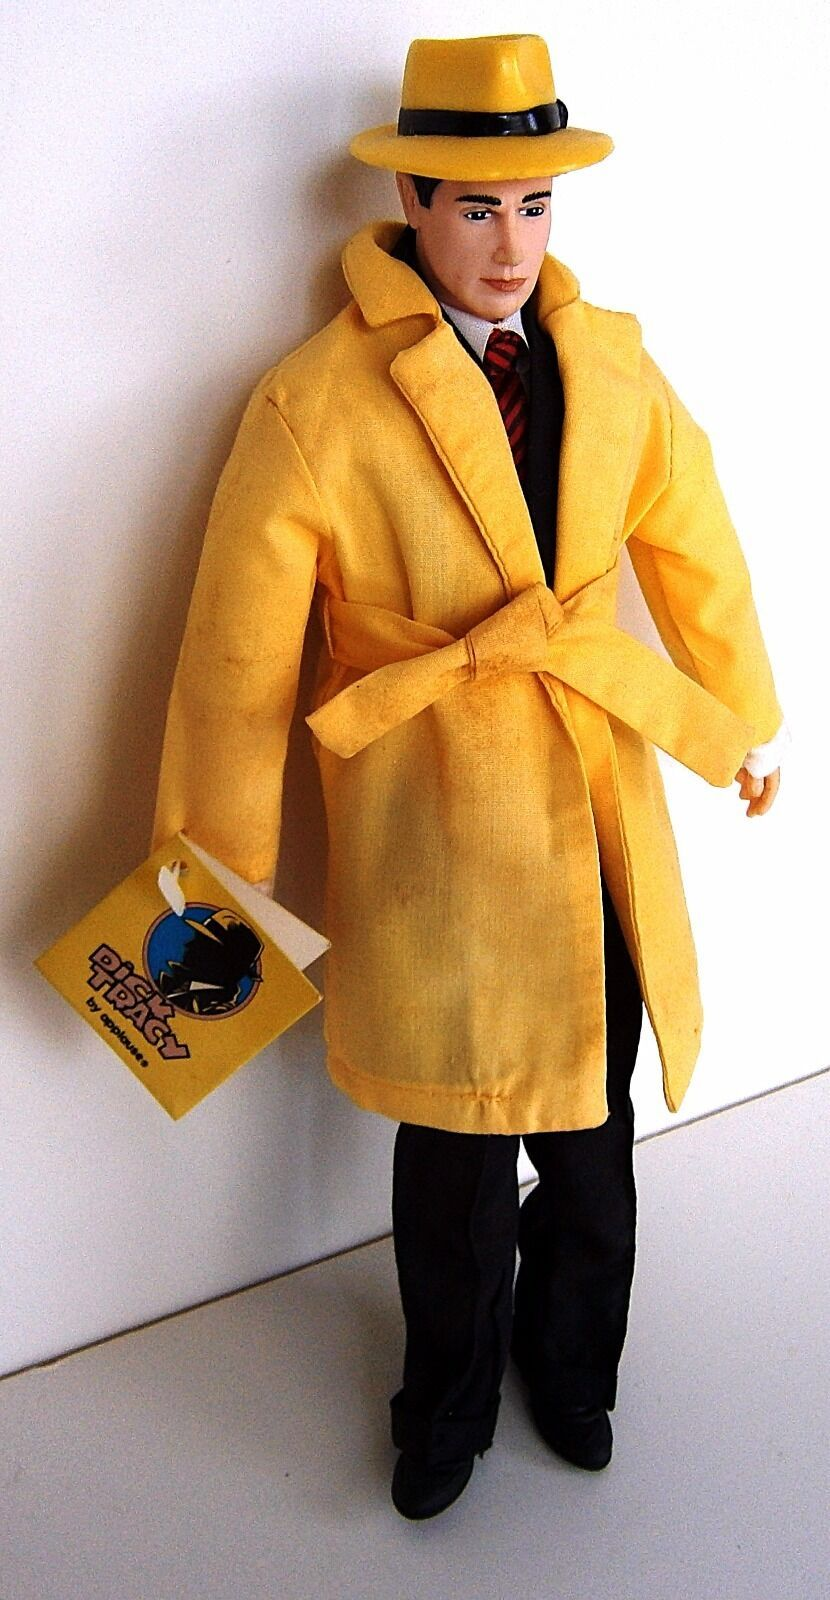 Dick Tracy Doll by Applause image 3